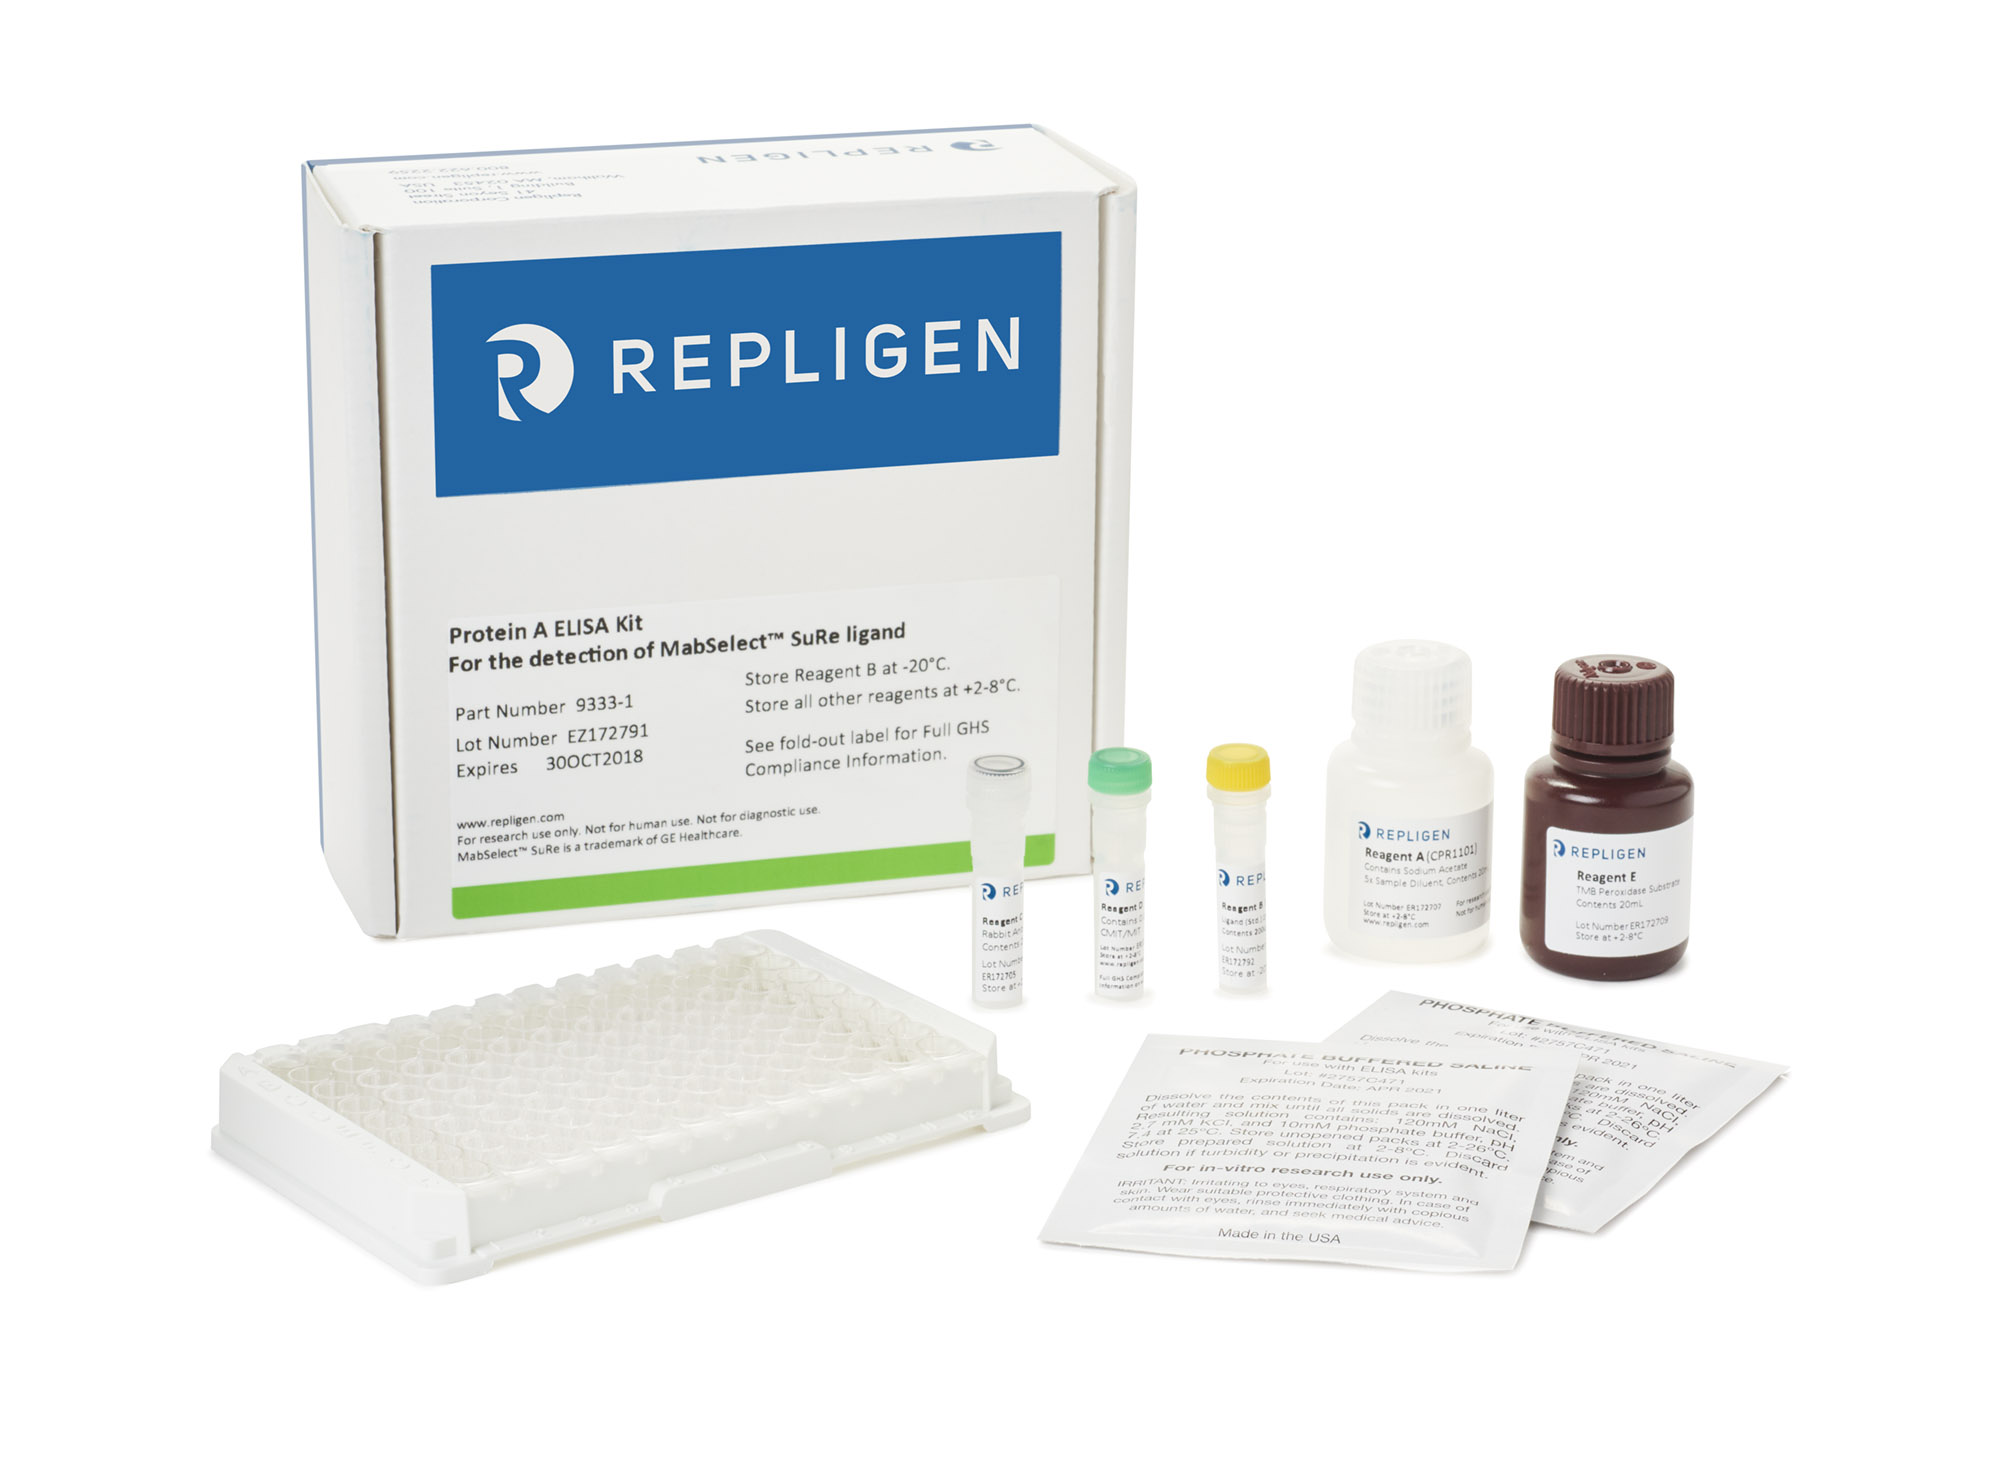 PROTEIN A ELISA KIT FOR MABSELECT SURE™ LIGAND